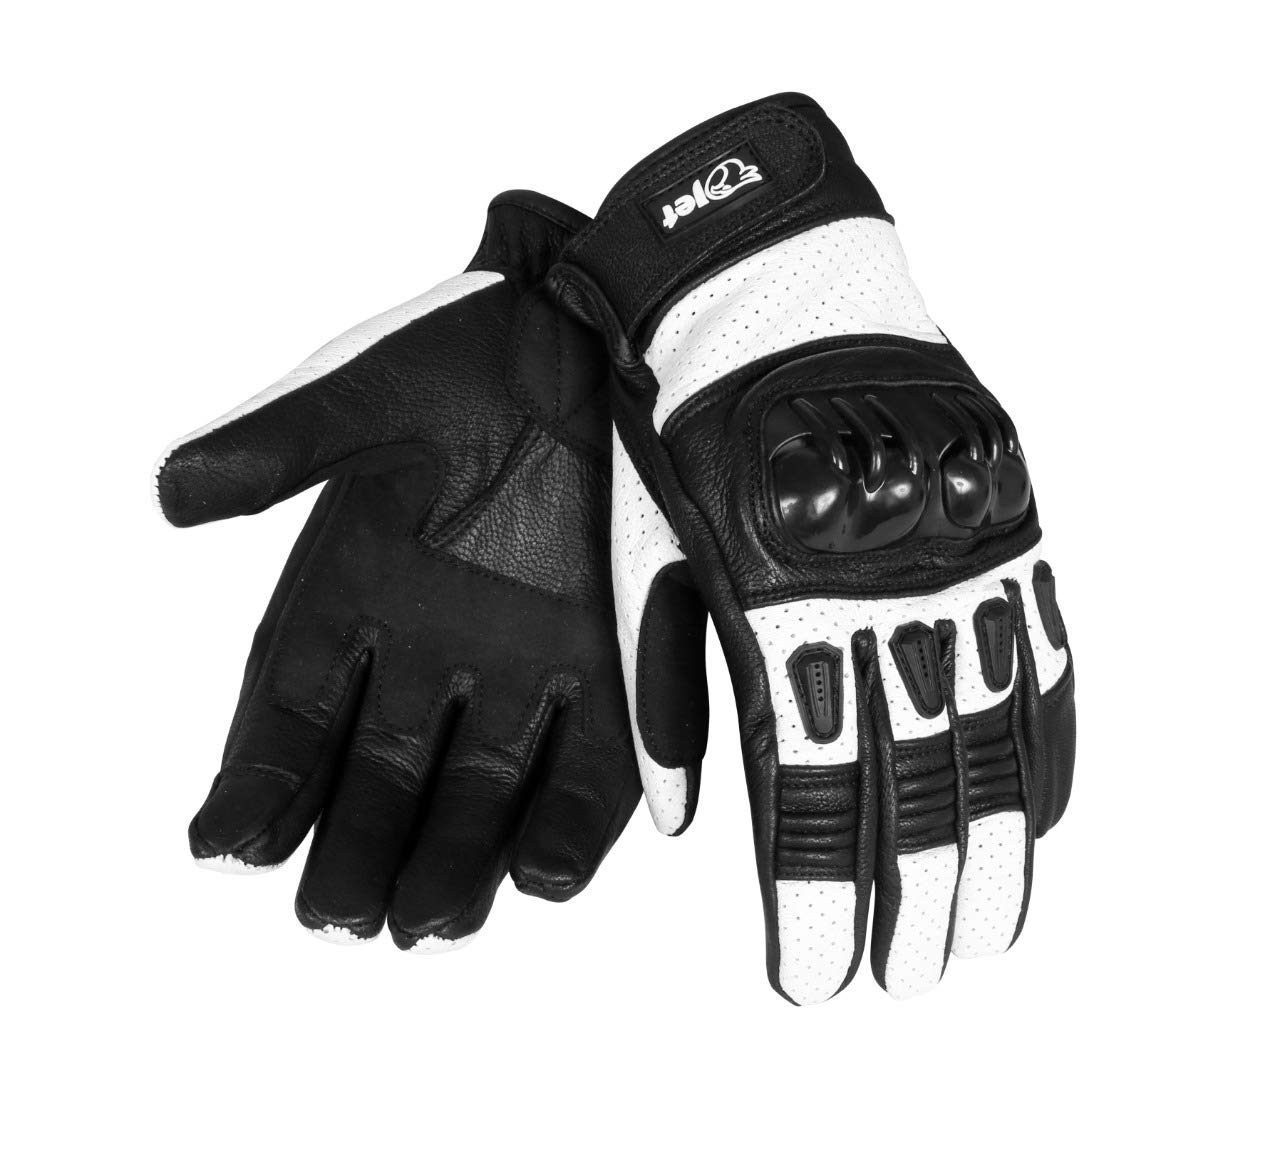 JET Motorcycle Motorbike Gloves Leather Vented Hard Knuckle Touch Screen Gloves Men ATV Riding KOBI L, Full Black